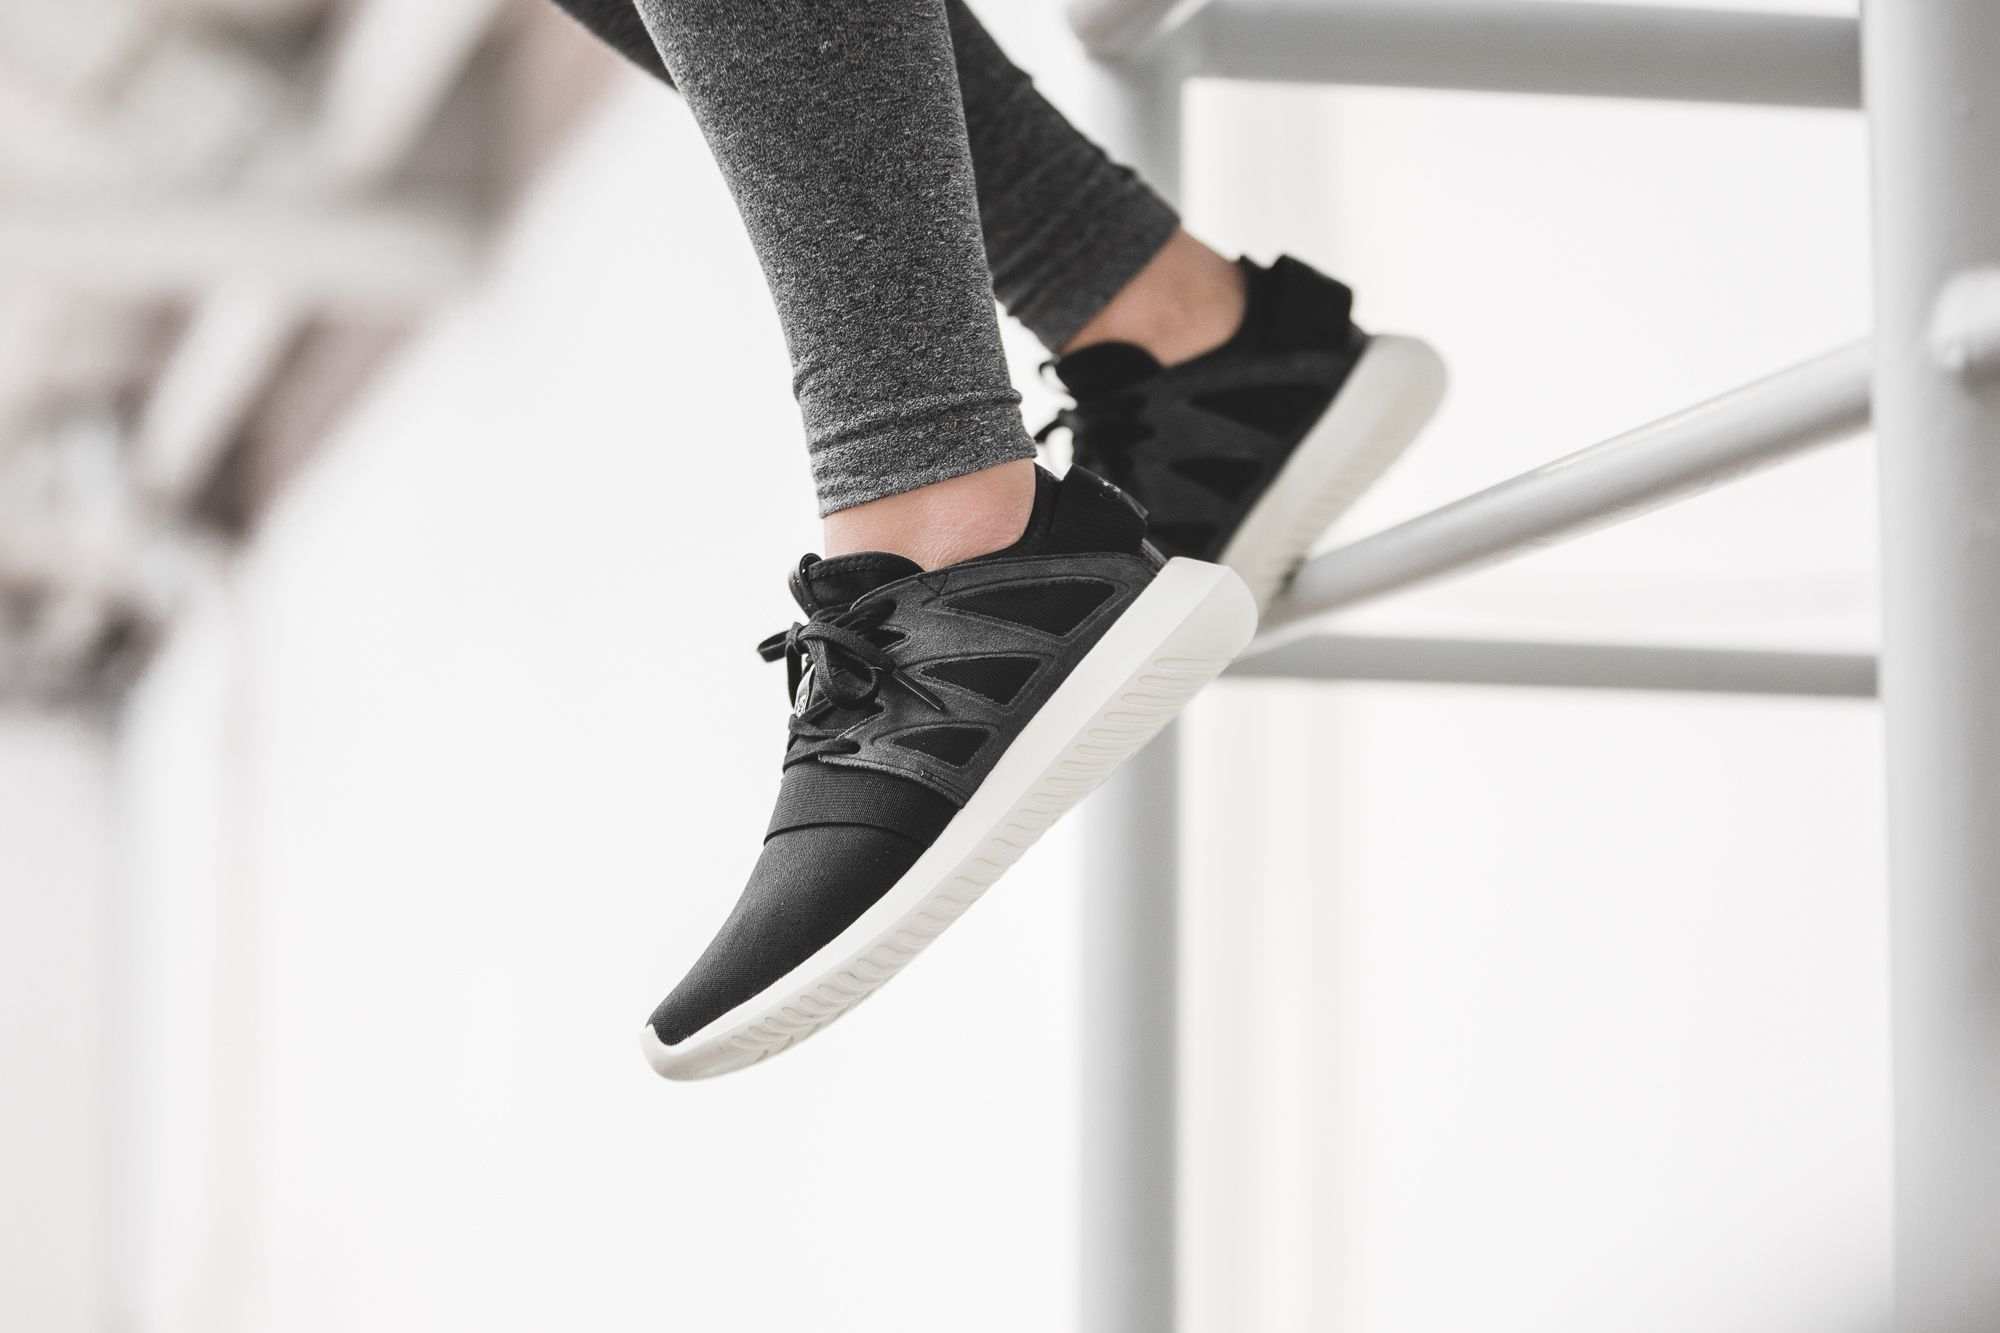 RELEASE REMINDER*** Girls, the adidas Originals Tubular